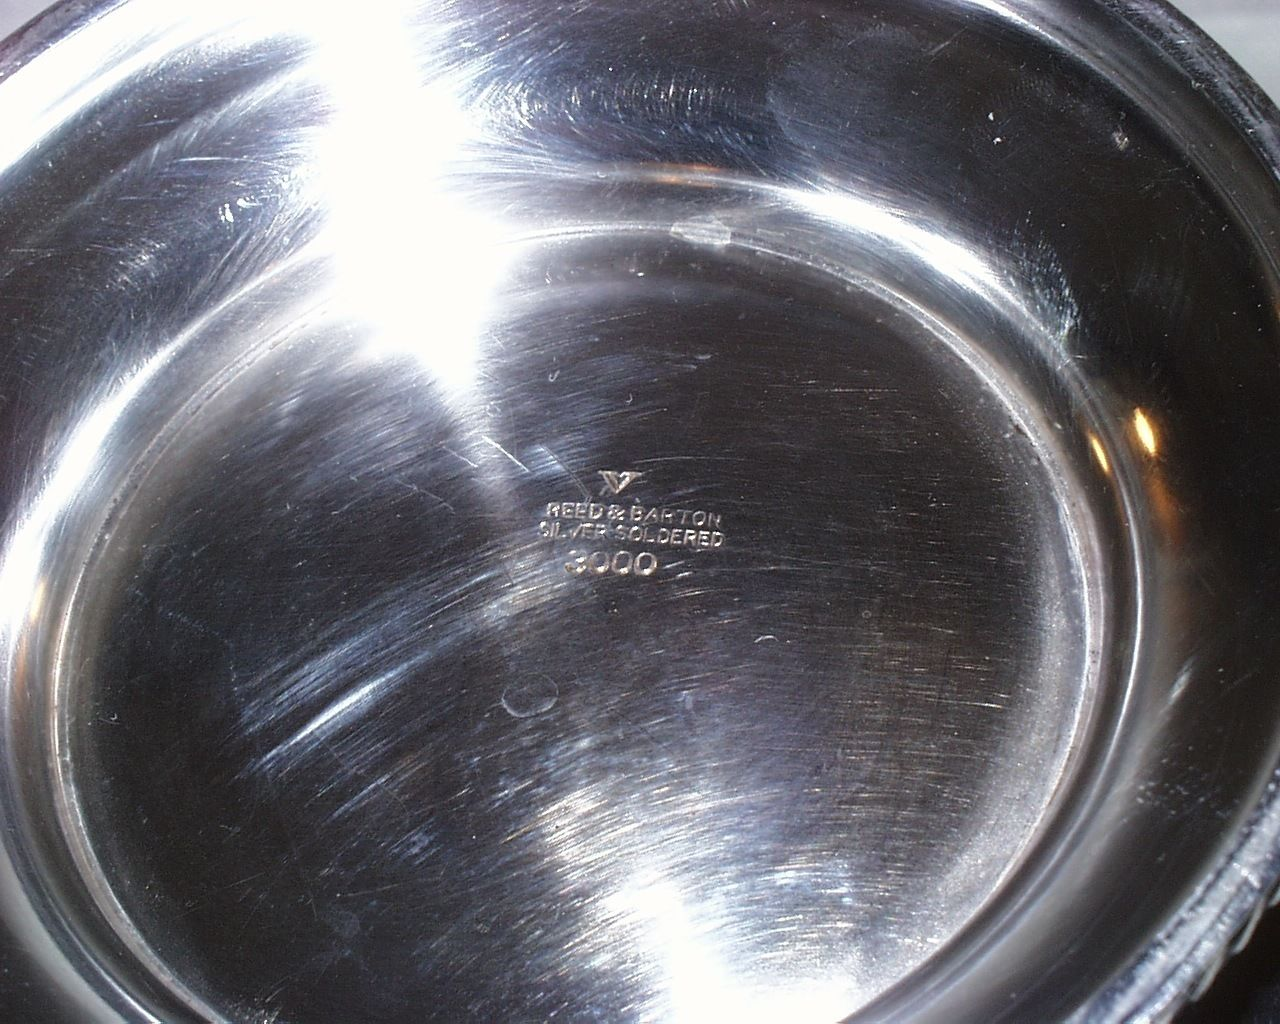 us navy wardroom mess silverplated serving bowl with handles reed and barton 1942